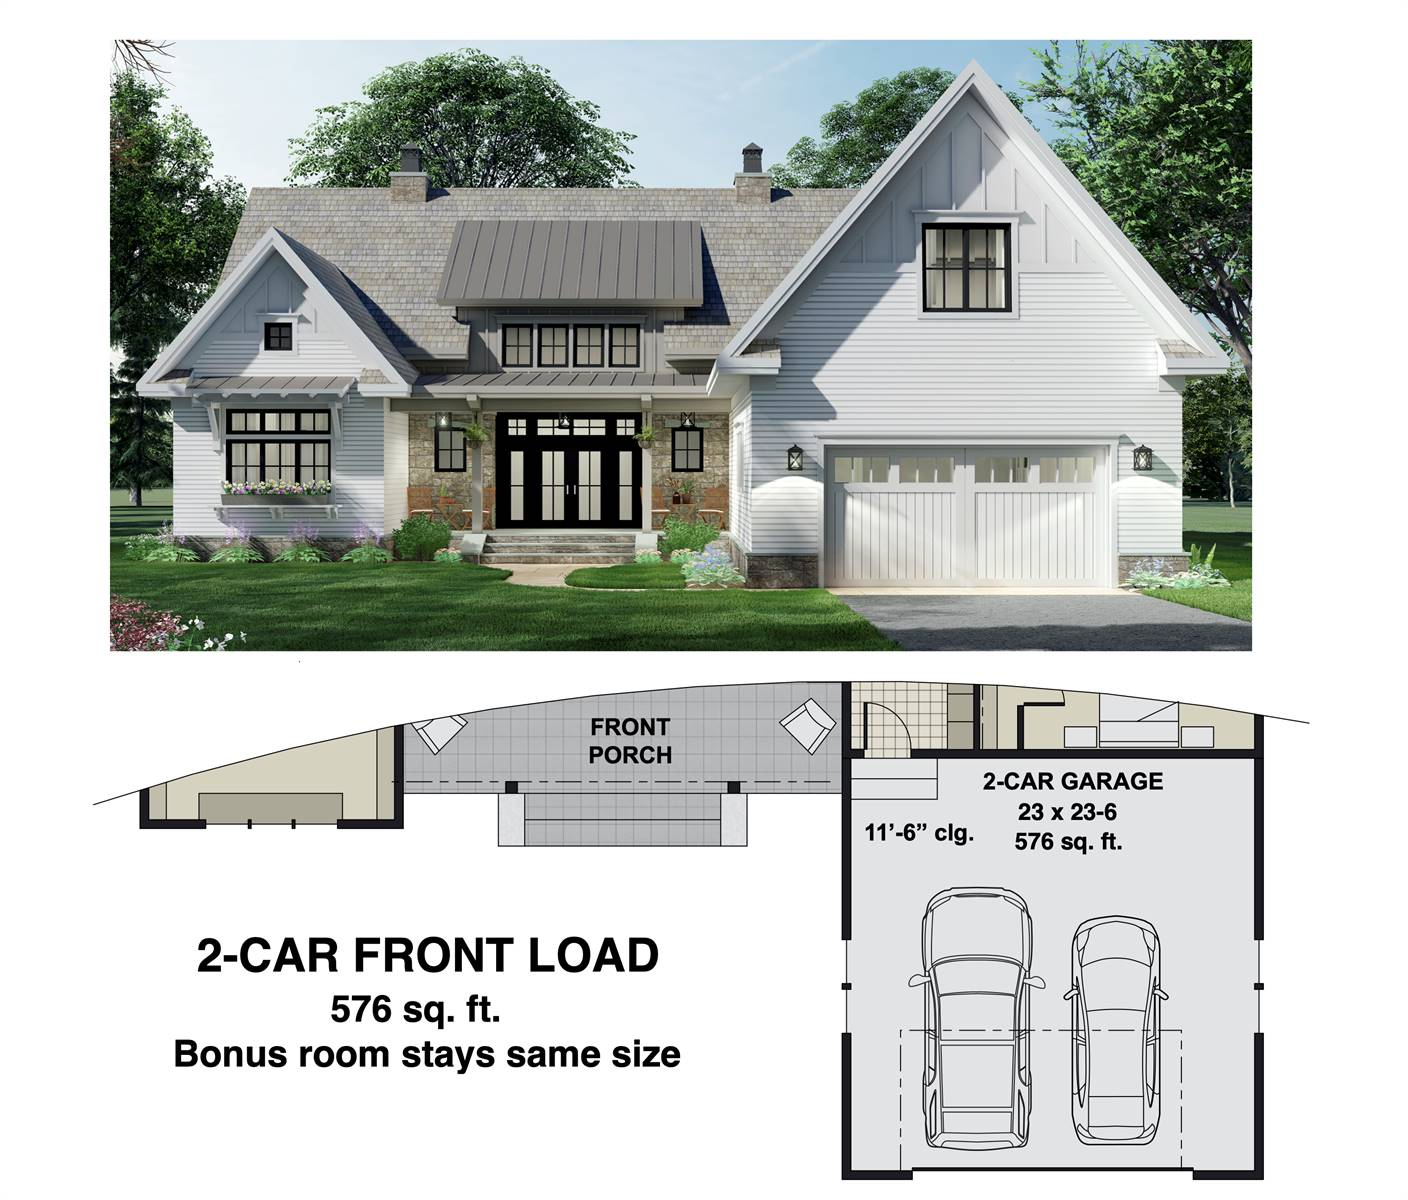 2-Car Front Entry Option image of Charming 3-Bedroom Farm House Style House Plan 8775